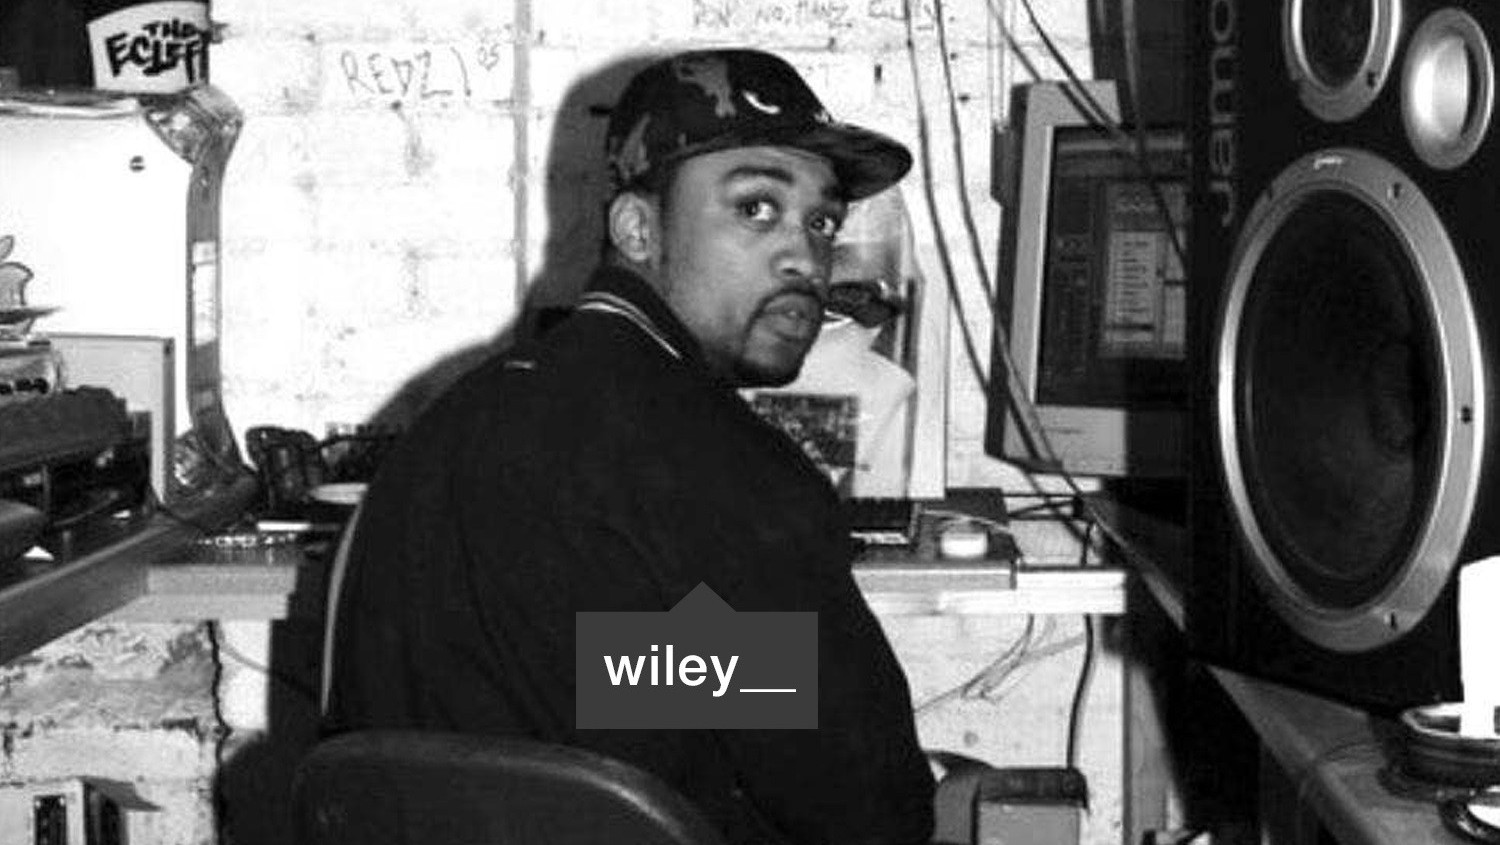 wiley drops godfather, says it's his final solo album